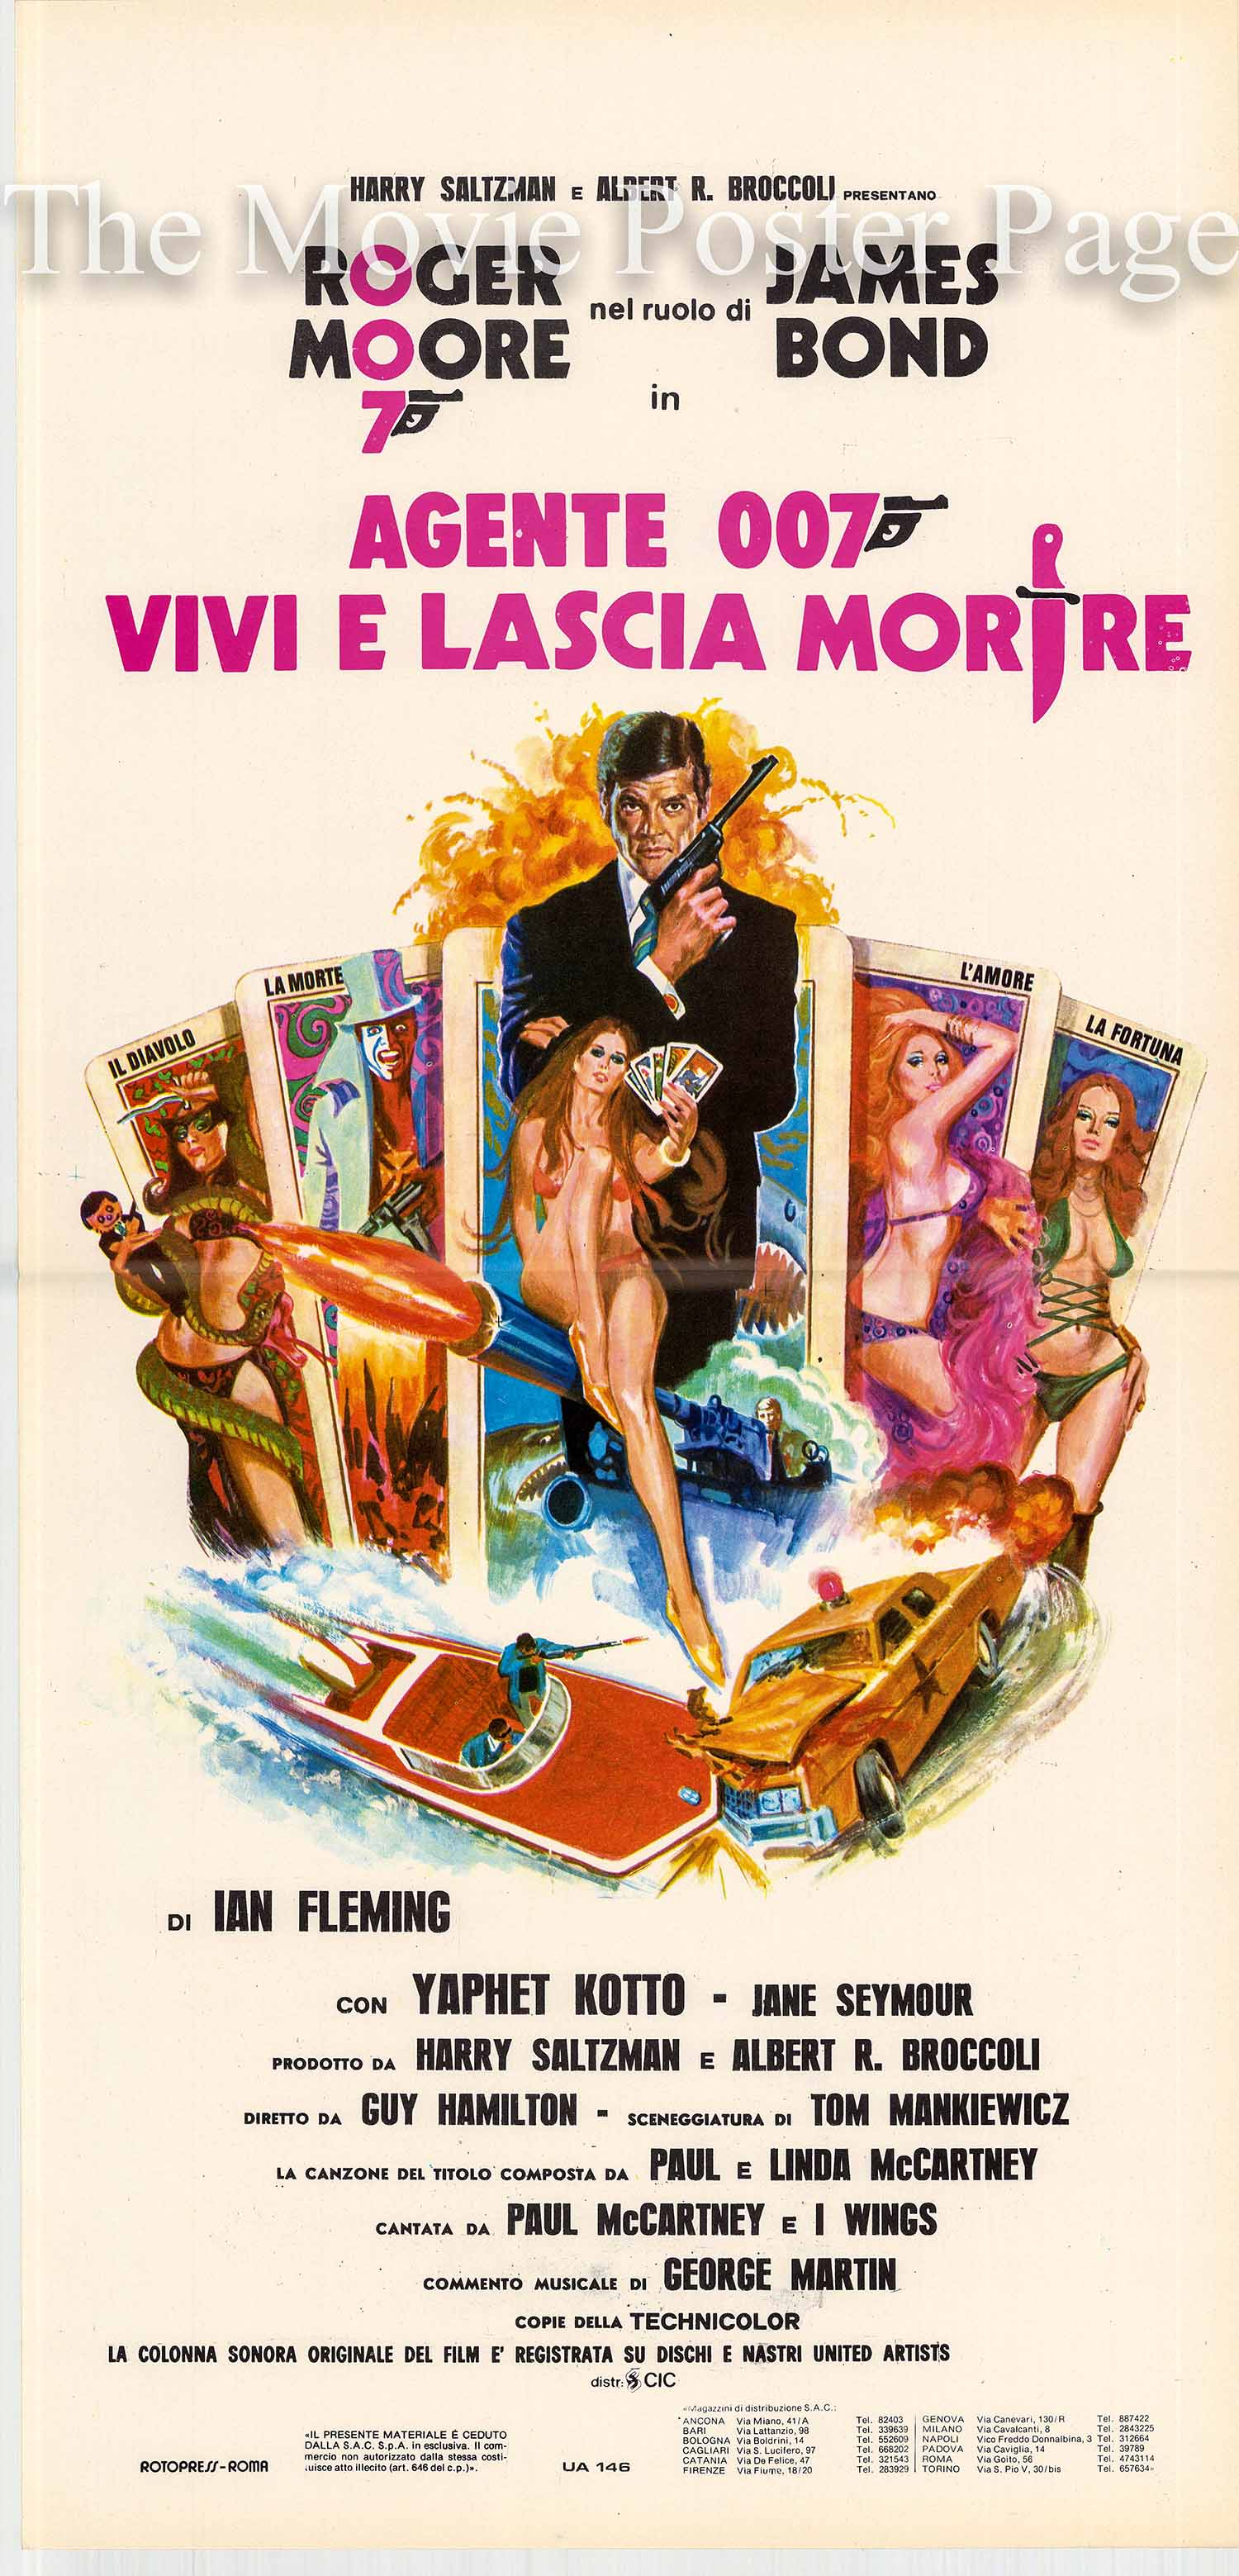 Pictured is an Italian locandina poster made to promote the 1973 Guy Hamilton film Live and Let Die starring Roger Moore as James Bond.